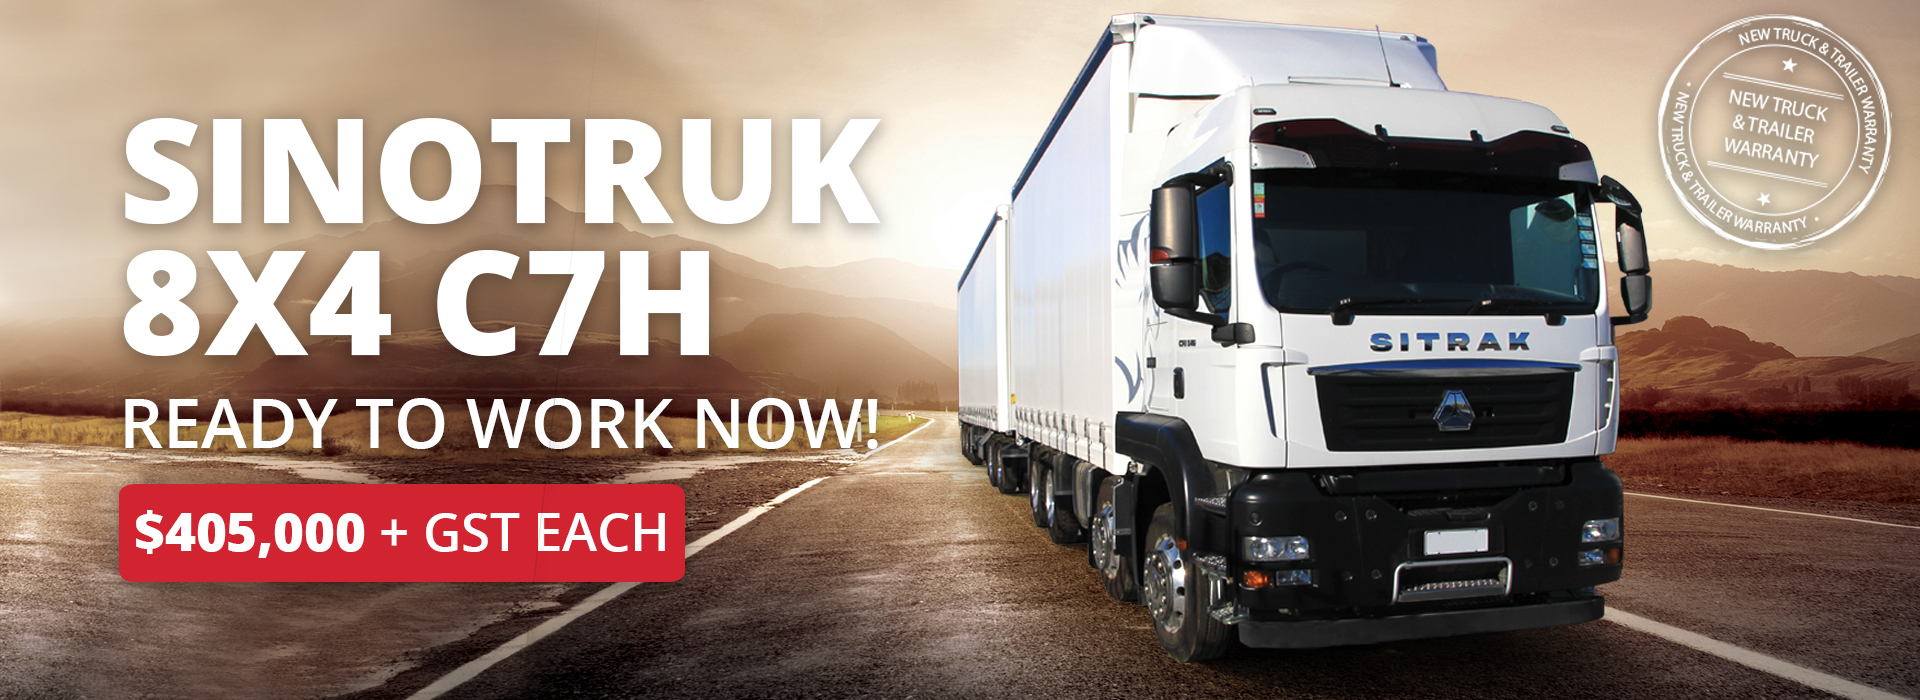 Sinotruk nz